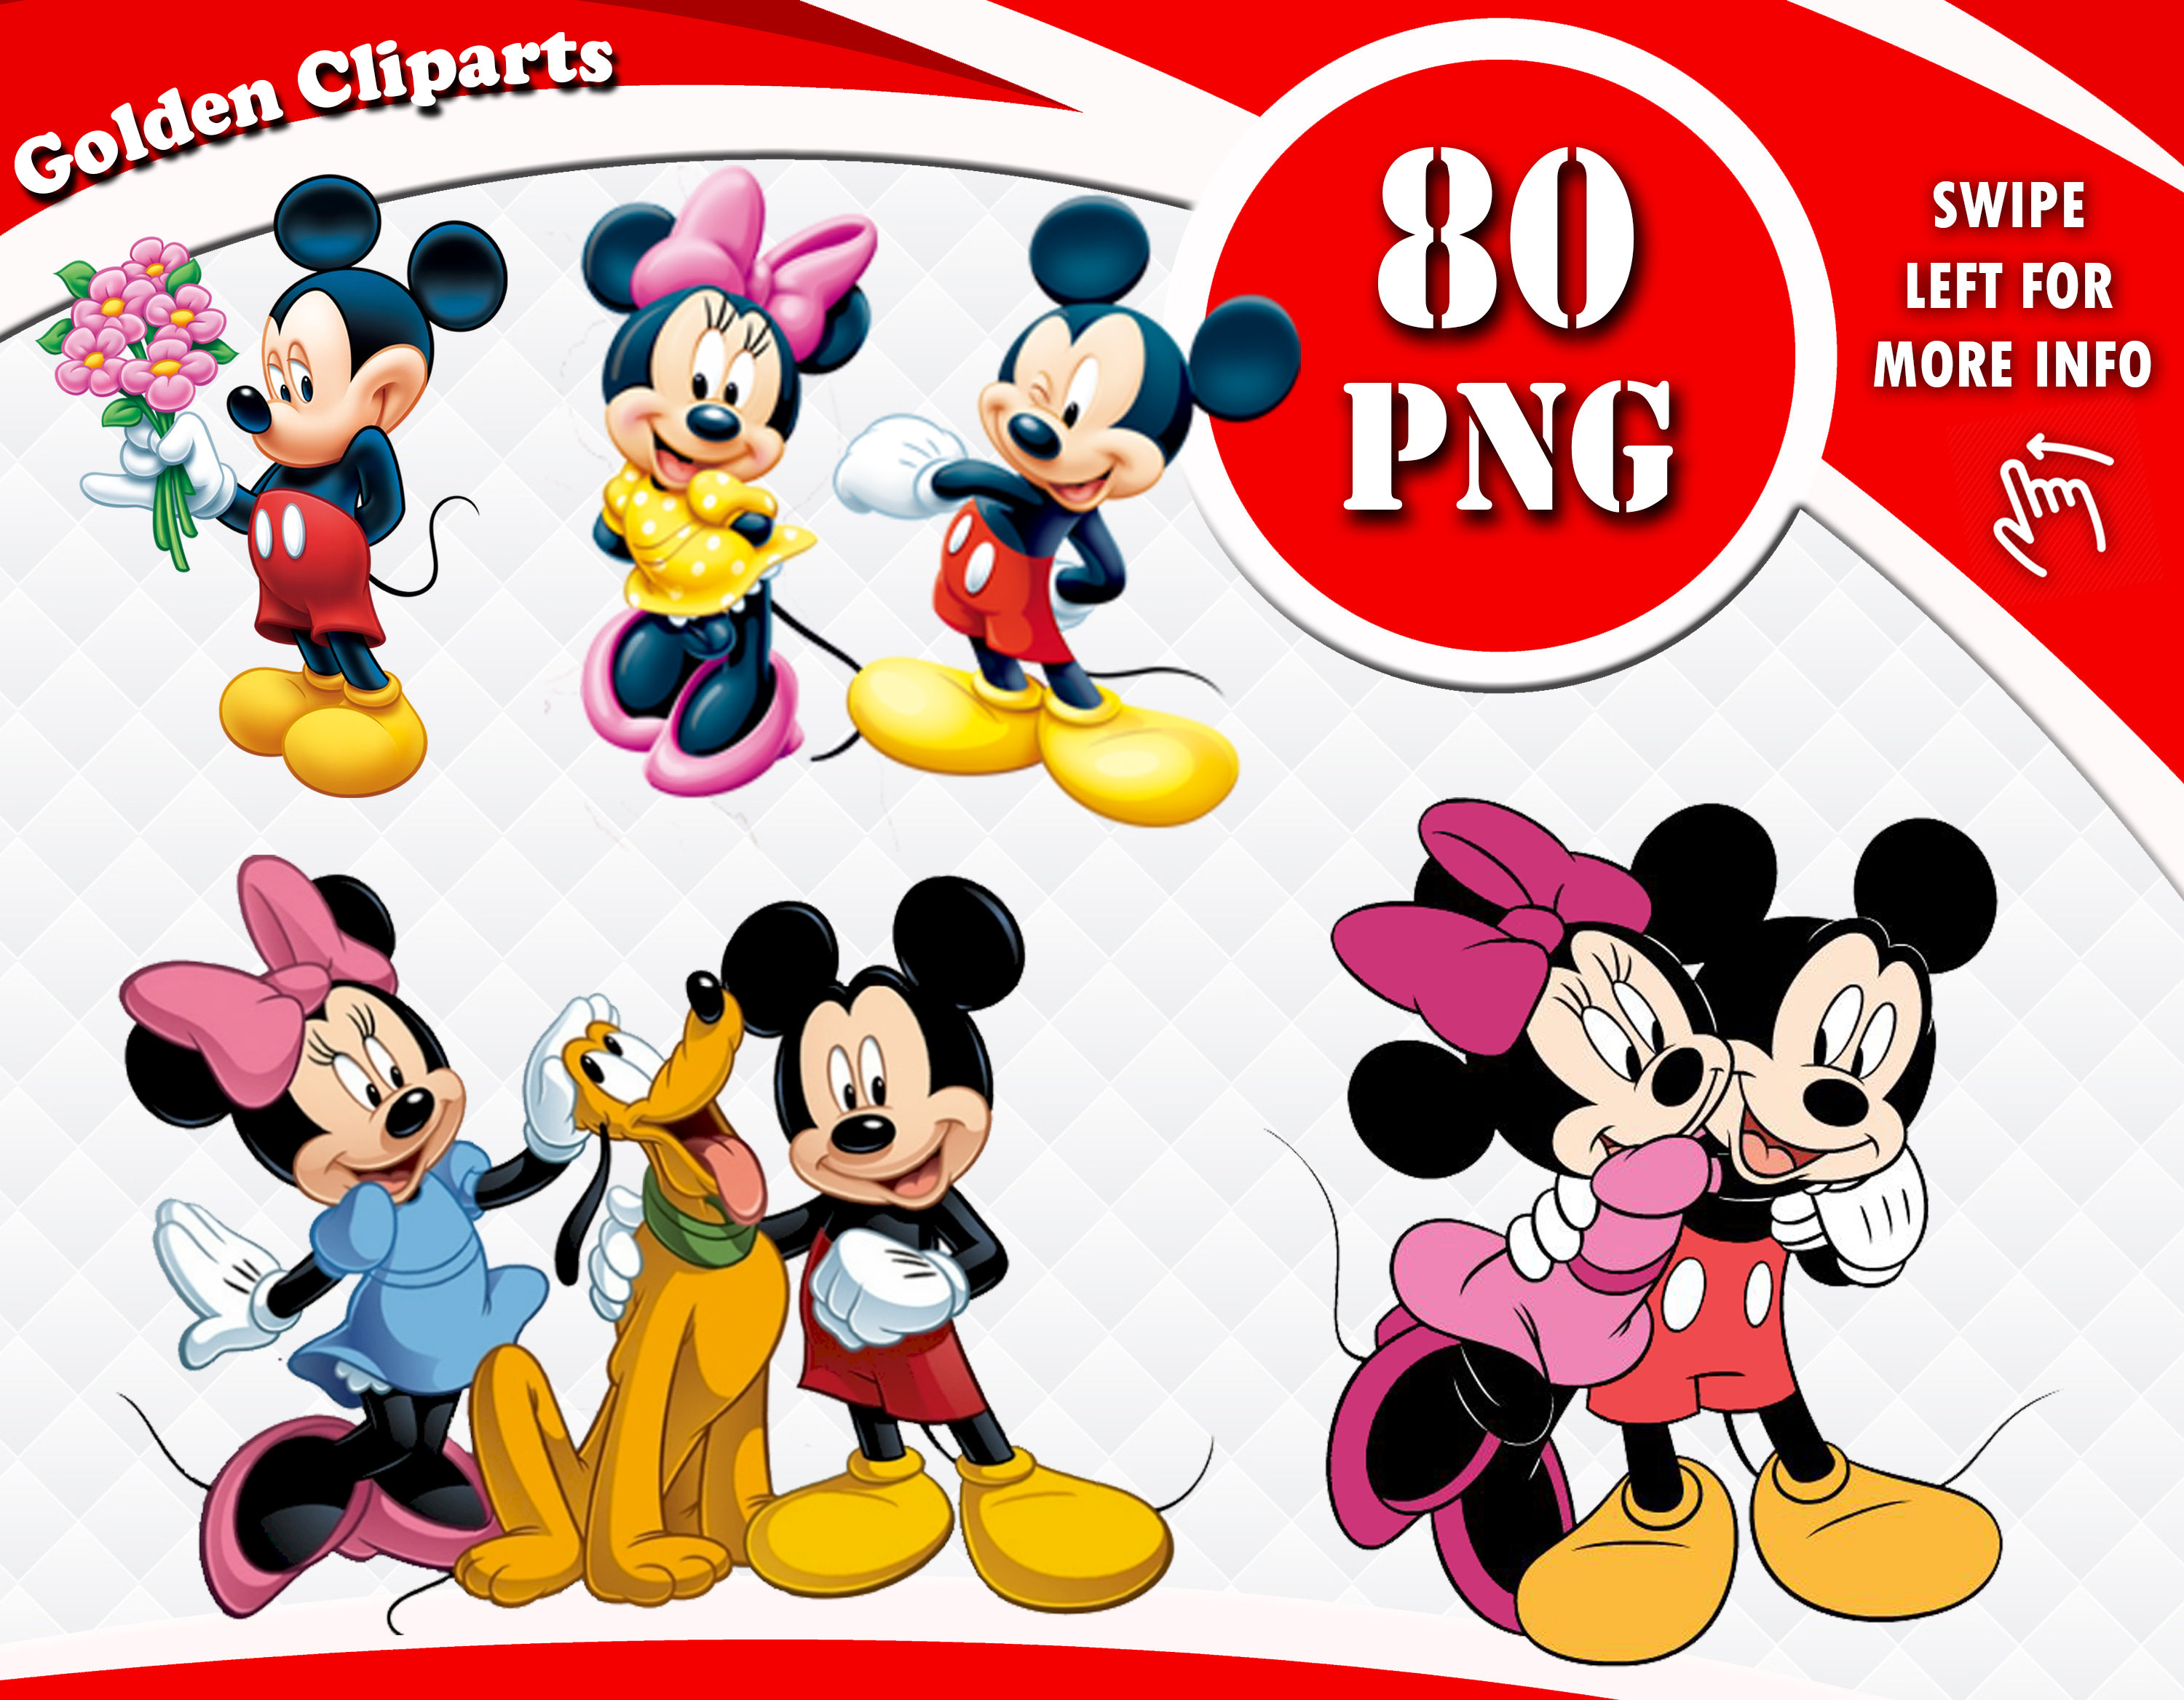 Mickey Mouse Minnie Mouse Clipart, Disney Characters PNG Files, Mickey  Minnie Clipart, Disney Cliparts, Transparent Background, Instant DL.